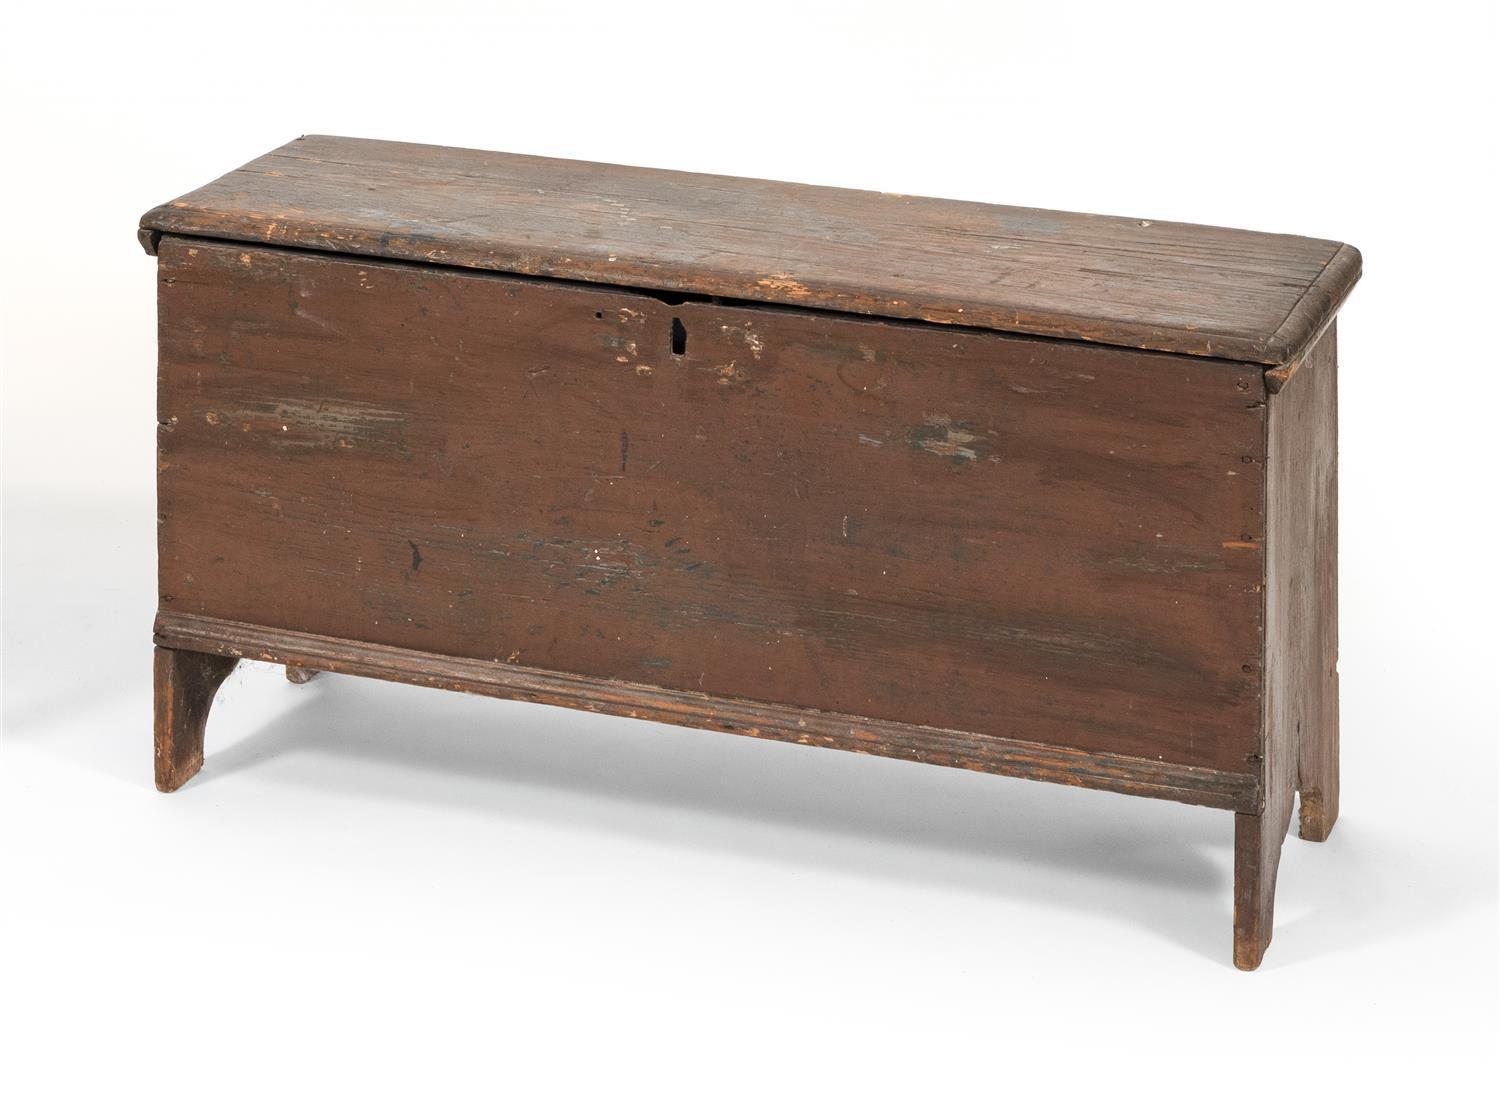 "SIX-BOARD BLANKET CHEST America, Early 18th Century Height 19.75"". Width 39"". Depth 14.5""."